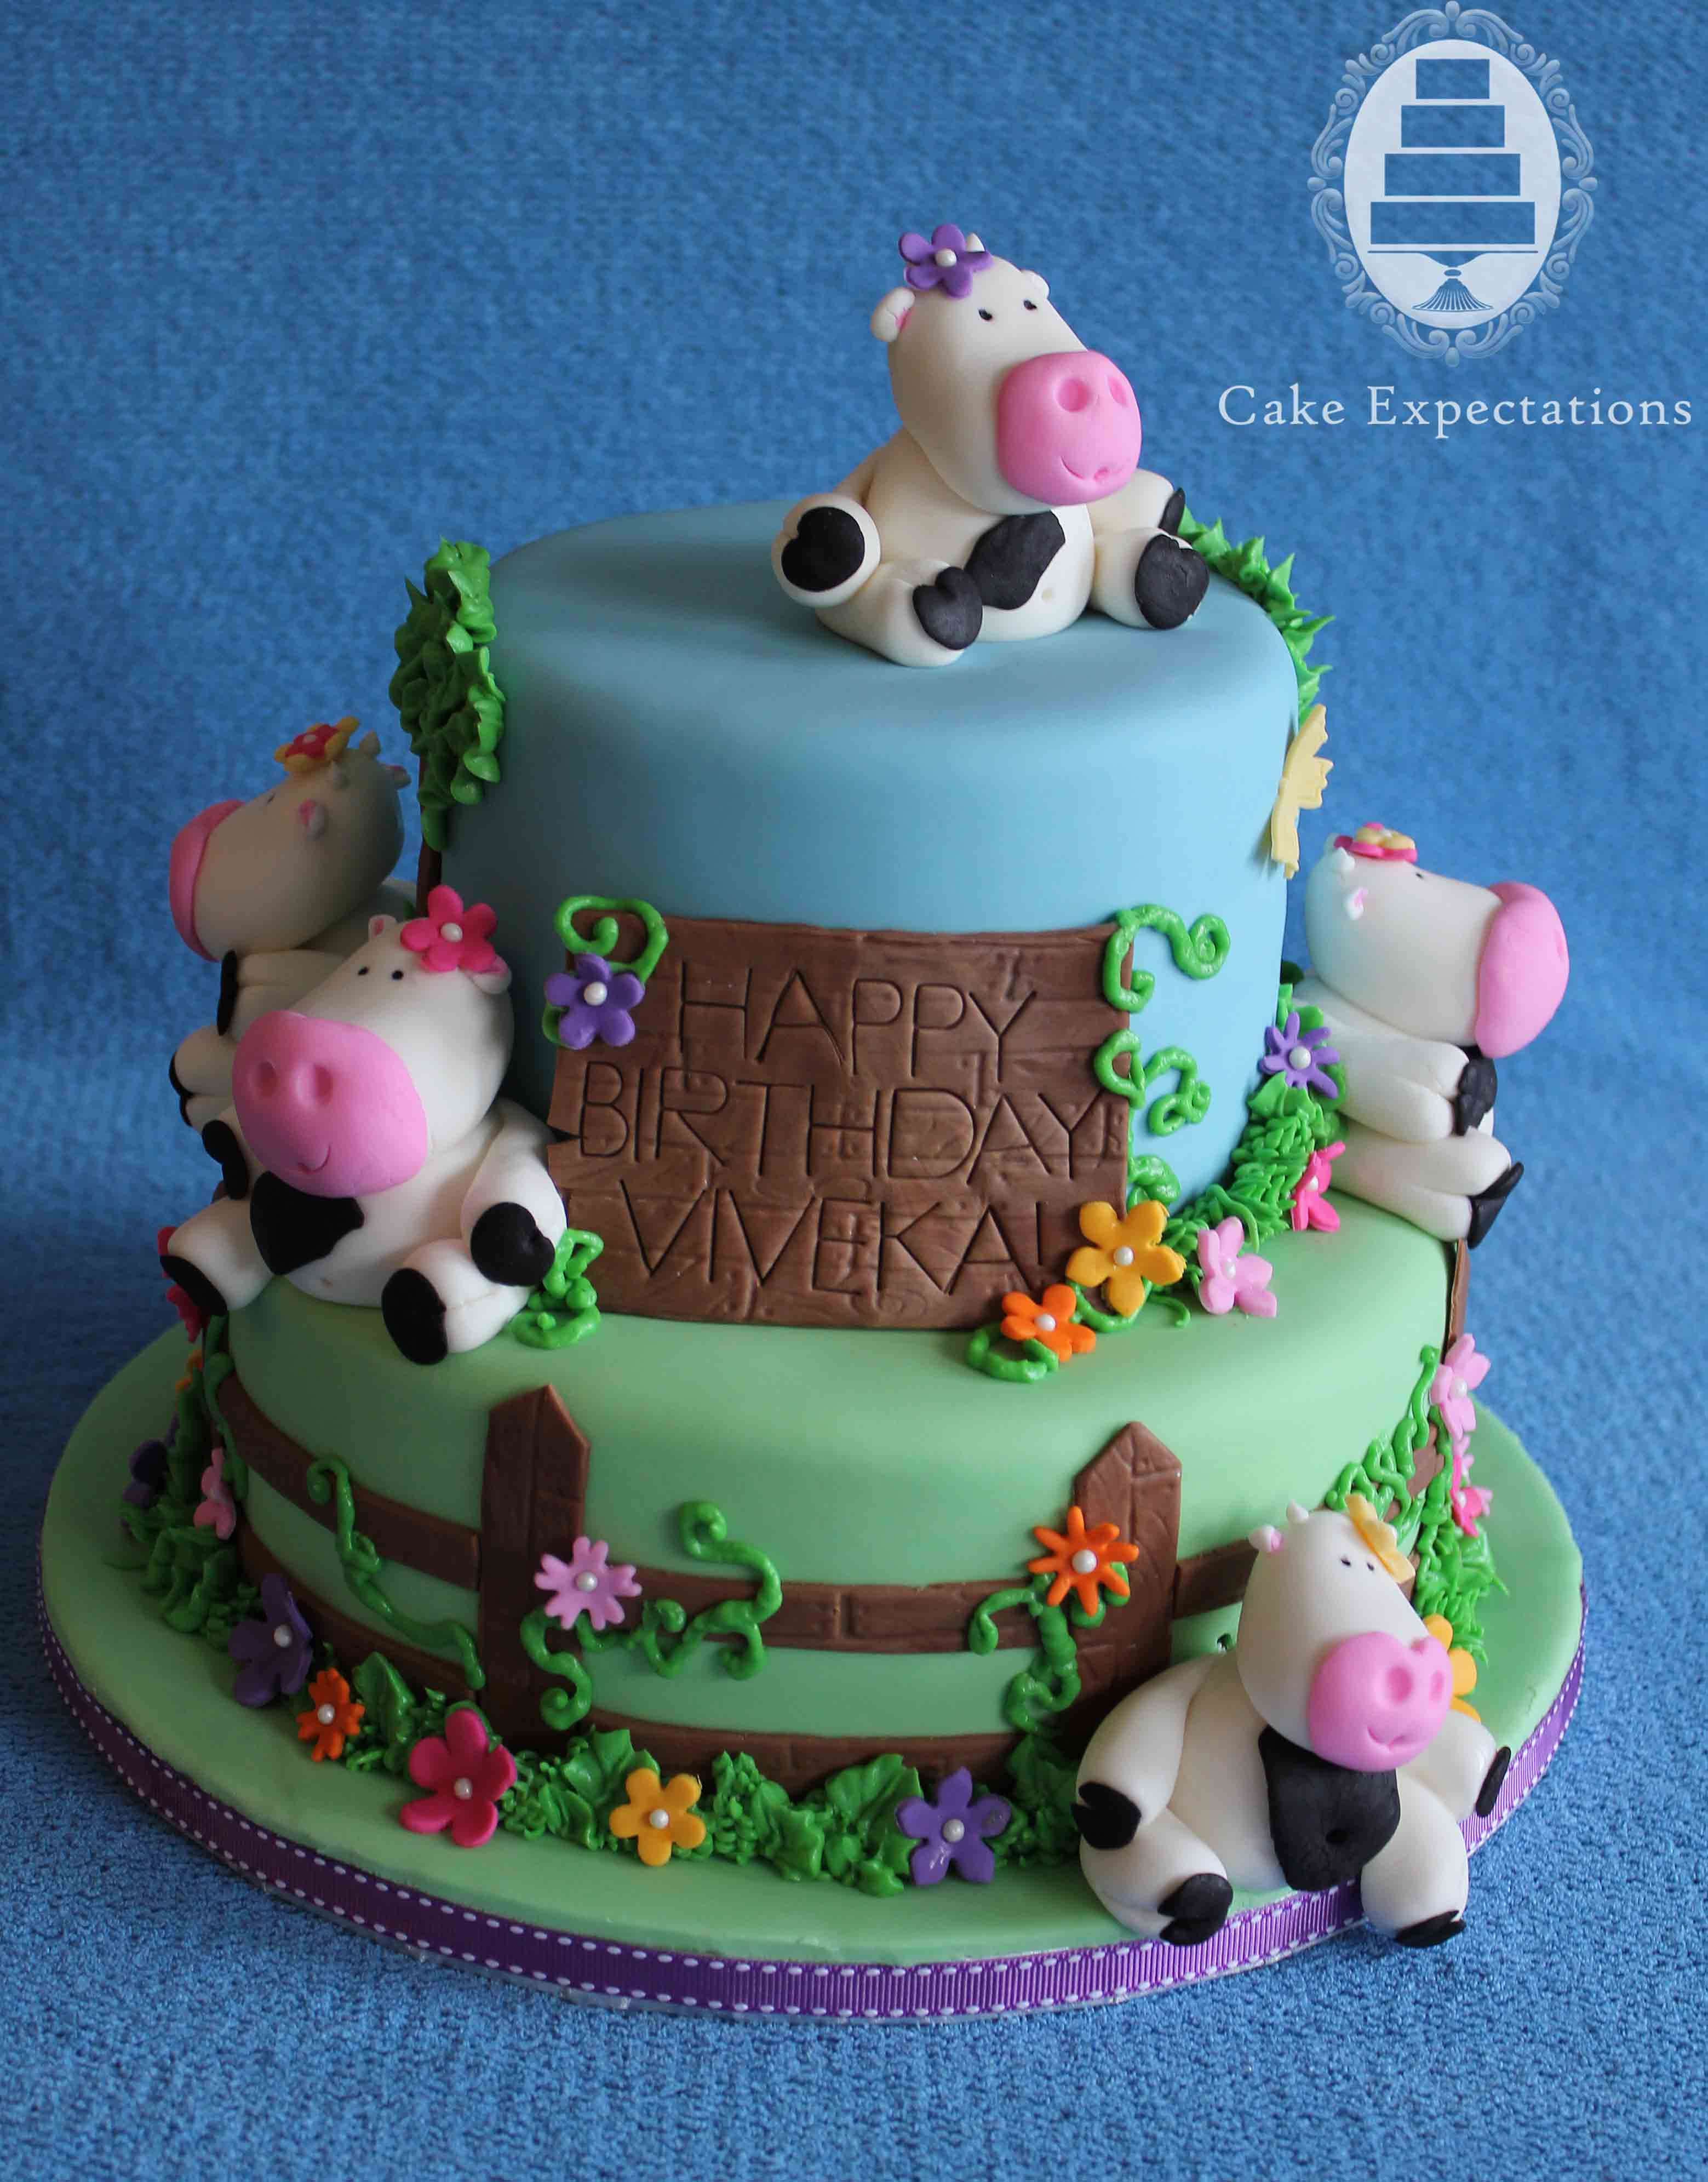 Easy Cow Cake Design : Cake Expectations   www.cakeexpectations.ca   Blog Archive ...